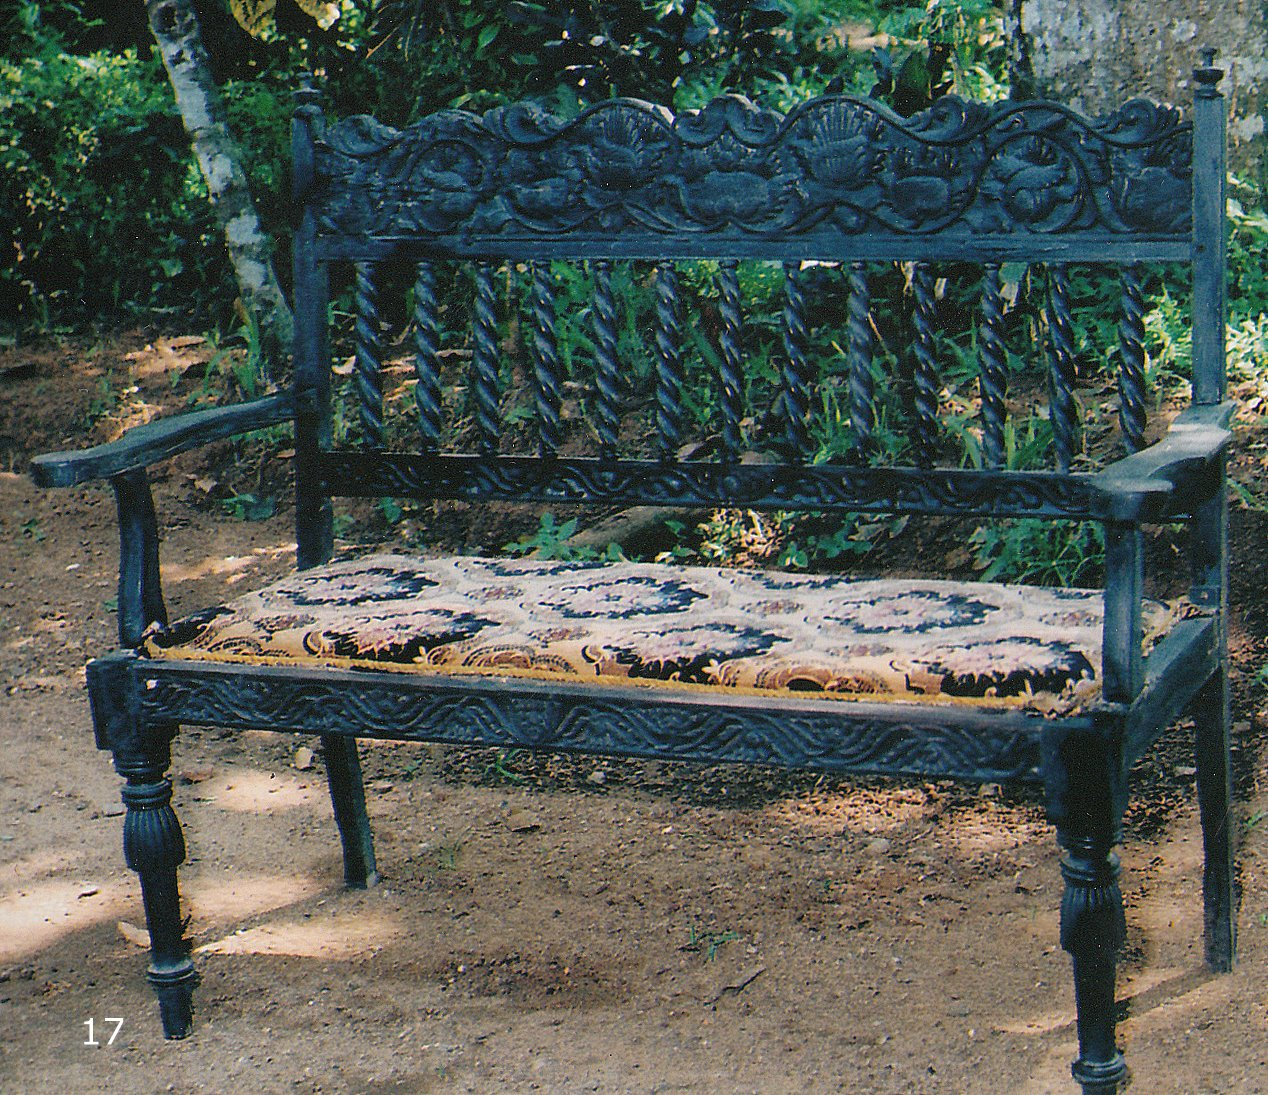 Marvelous photograph of Discover SriLanka: SRI LANKA ANTIQUES [ DUTCH FURNITURE ] with #28495F color and 1268x1095 pixels